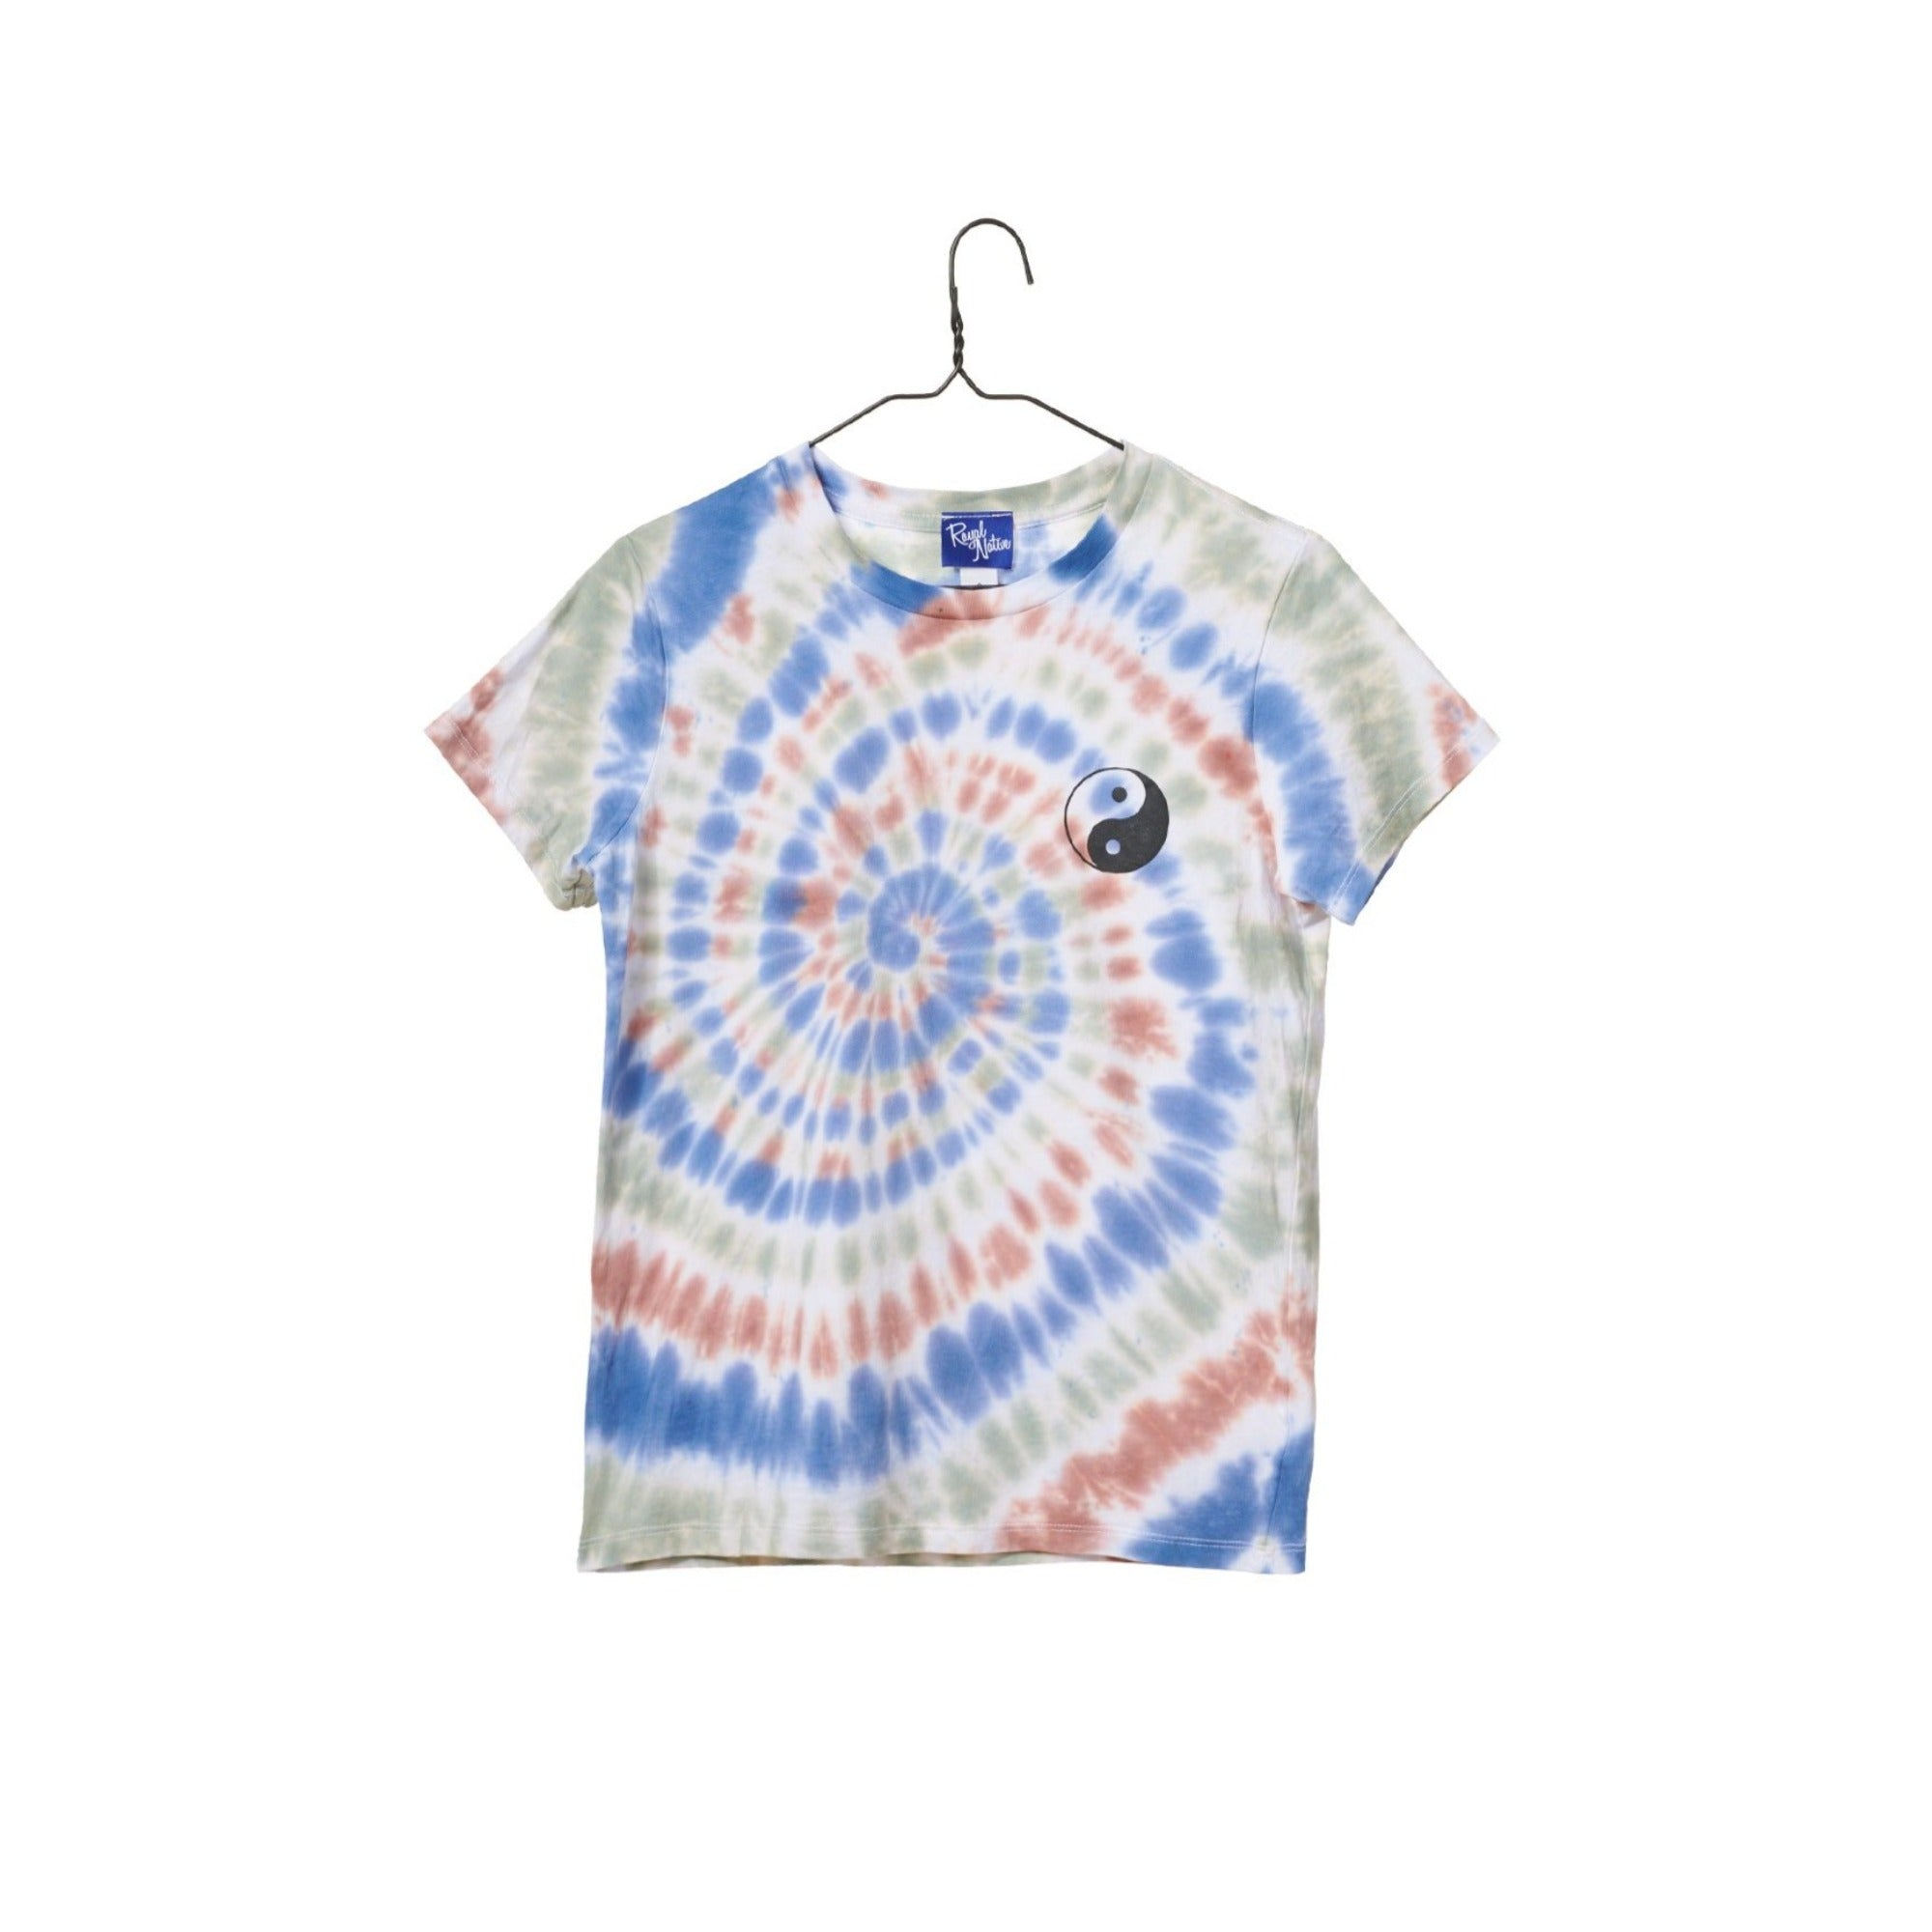 Yin Yang Tie-Dye T-Shirt - Earth